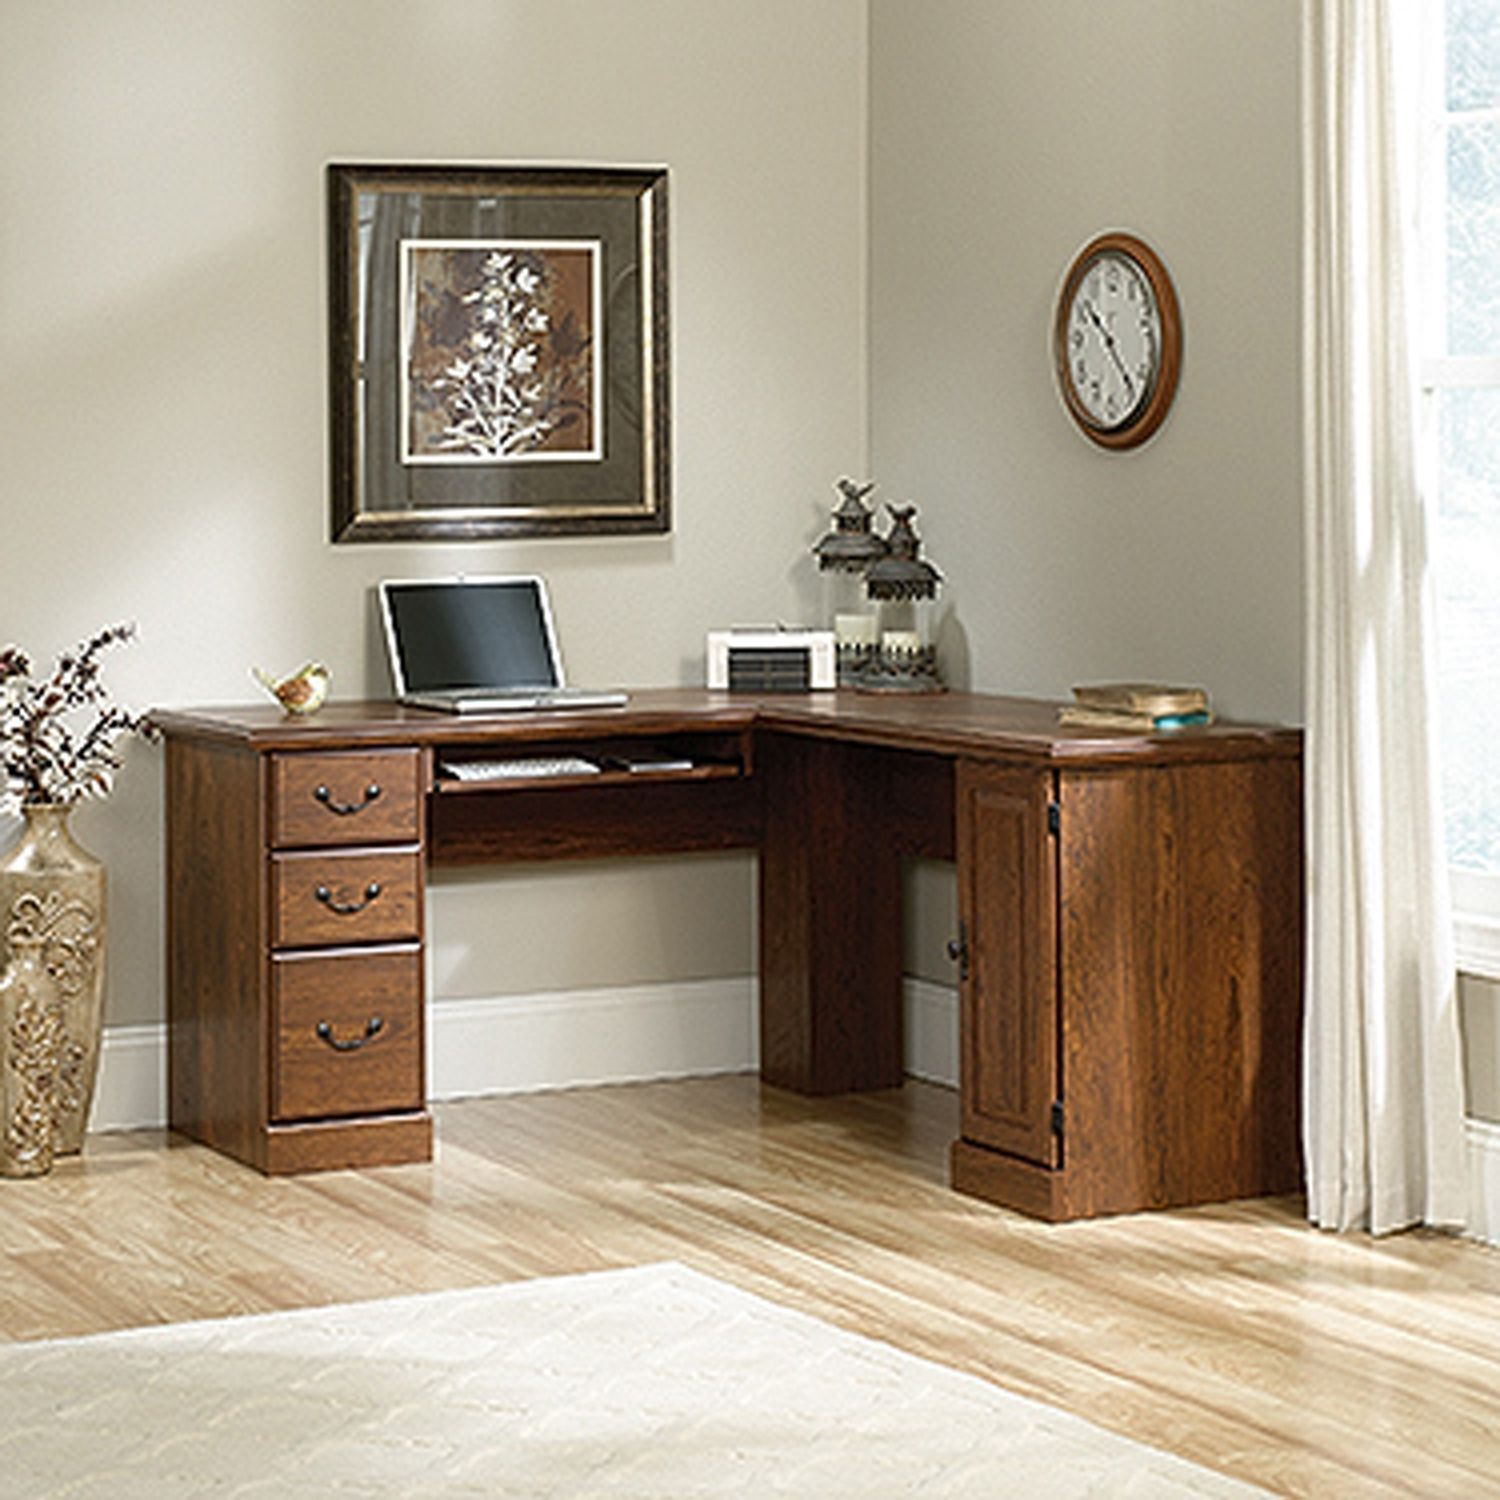 Picture of Orchard Hills Cornr Computer Desk Milled Cherry *